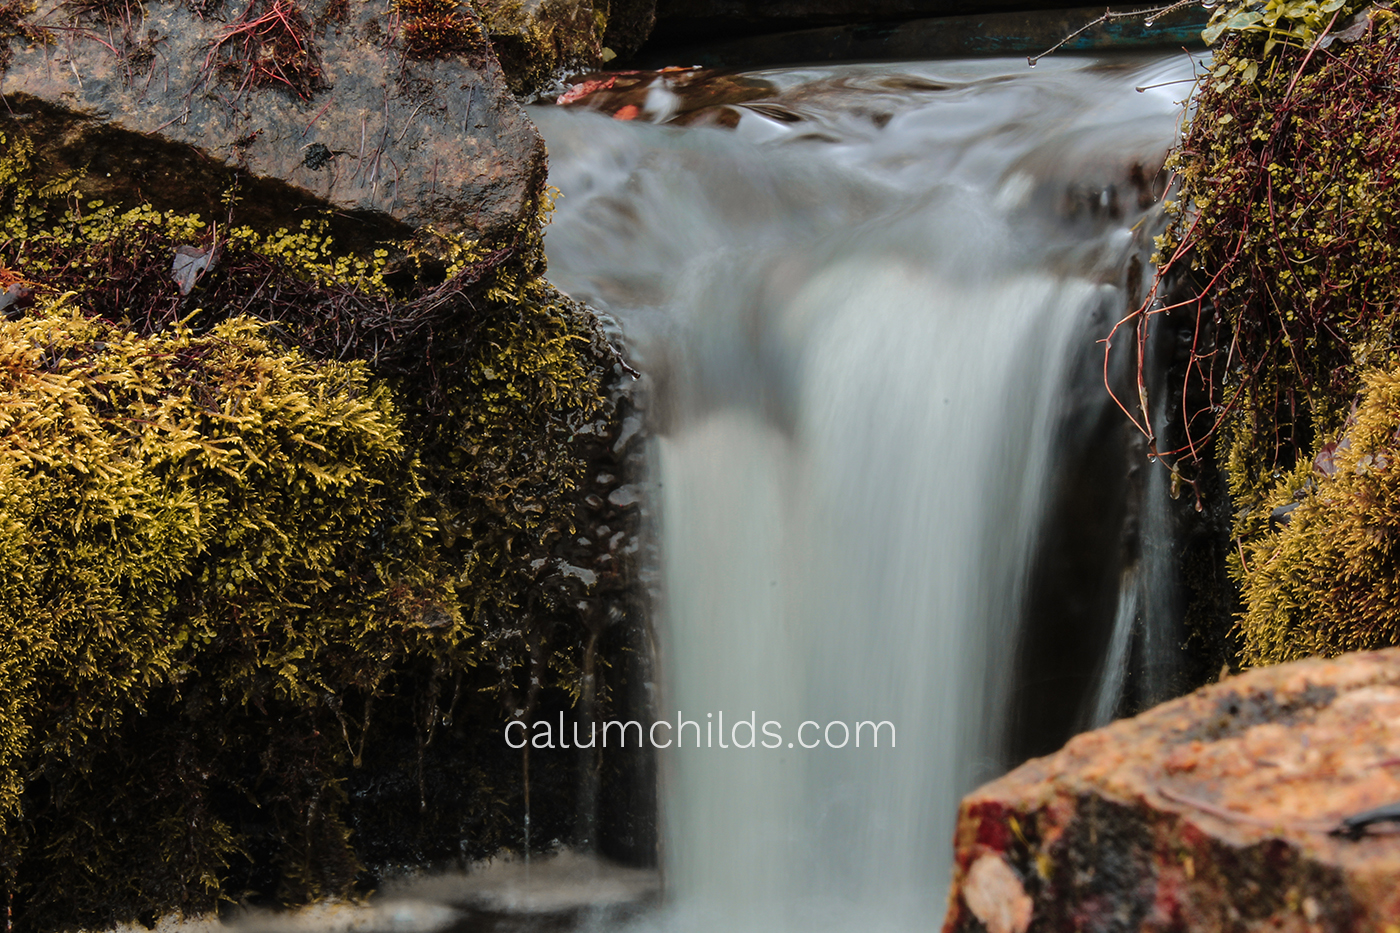 A long-exposure shot of a waterfall surrounded by mainly yellow foliage.